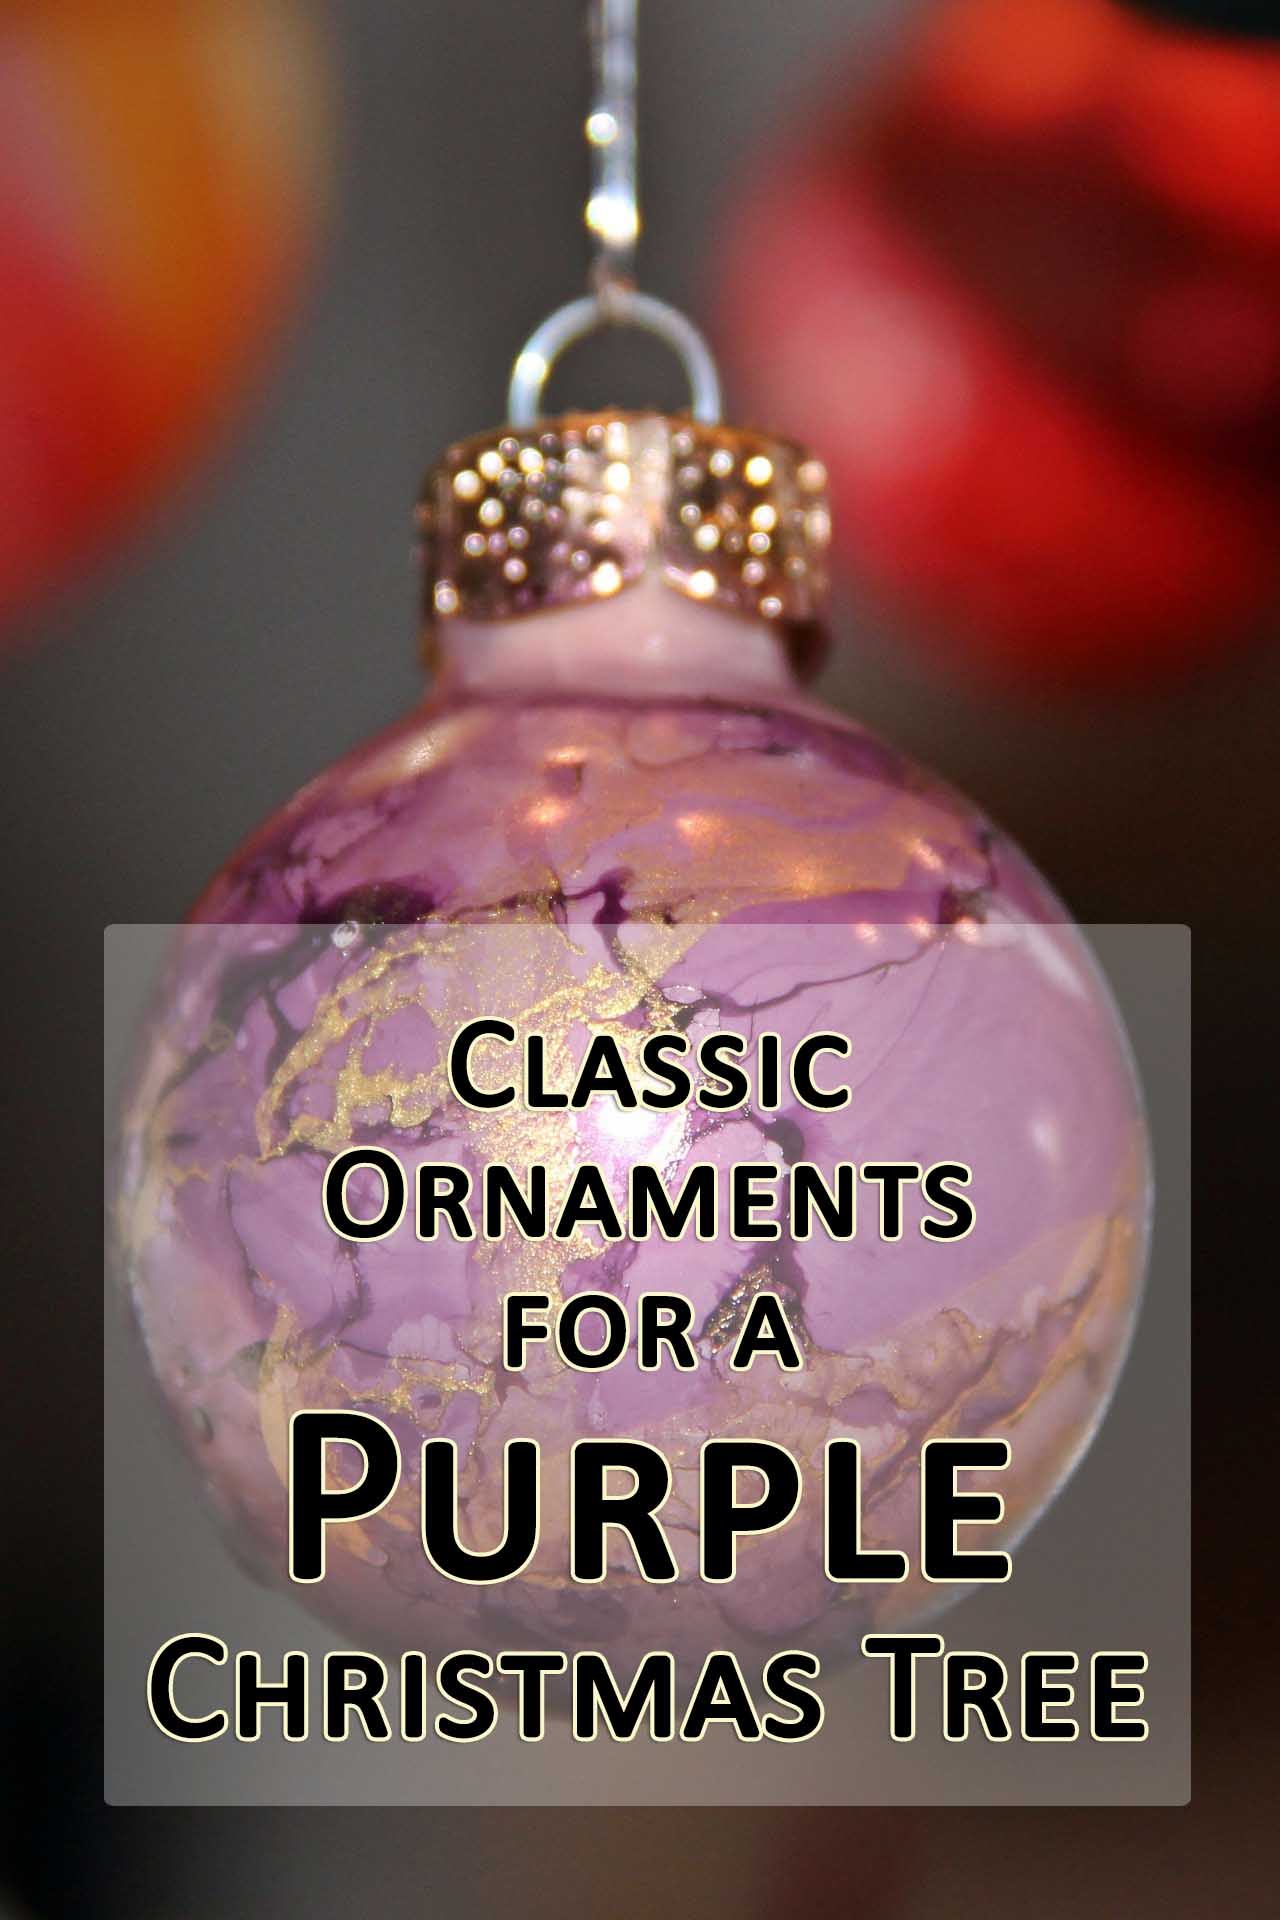 classic ornaments for a purple christmas tree